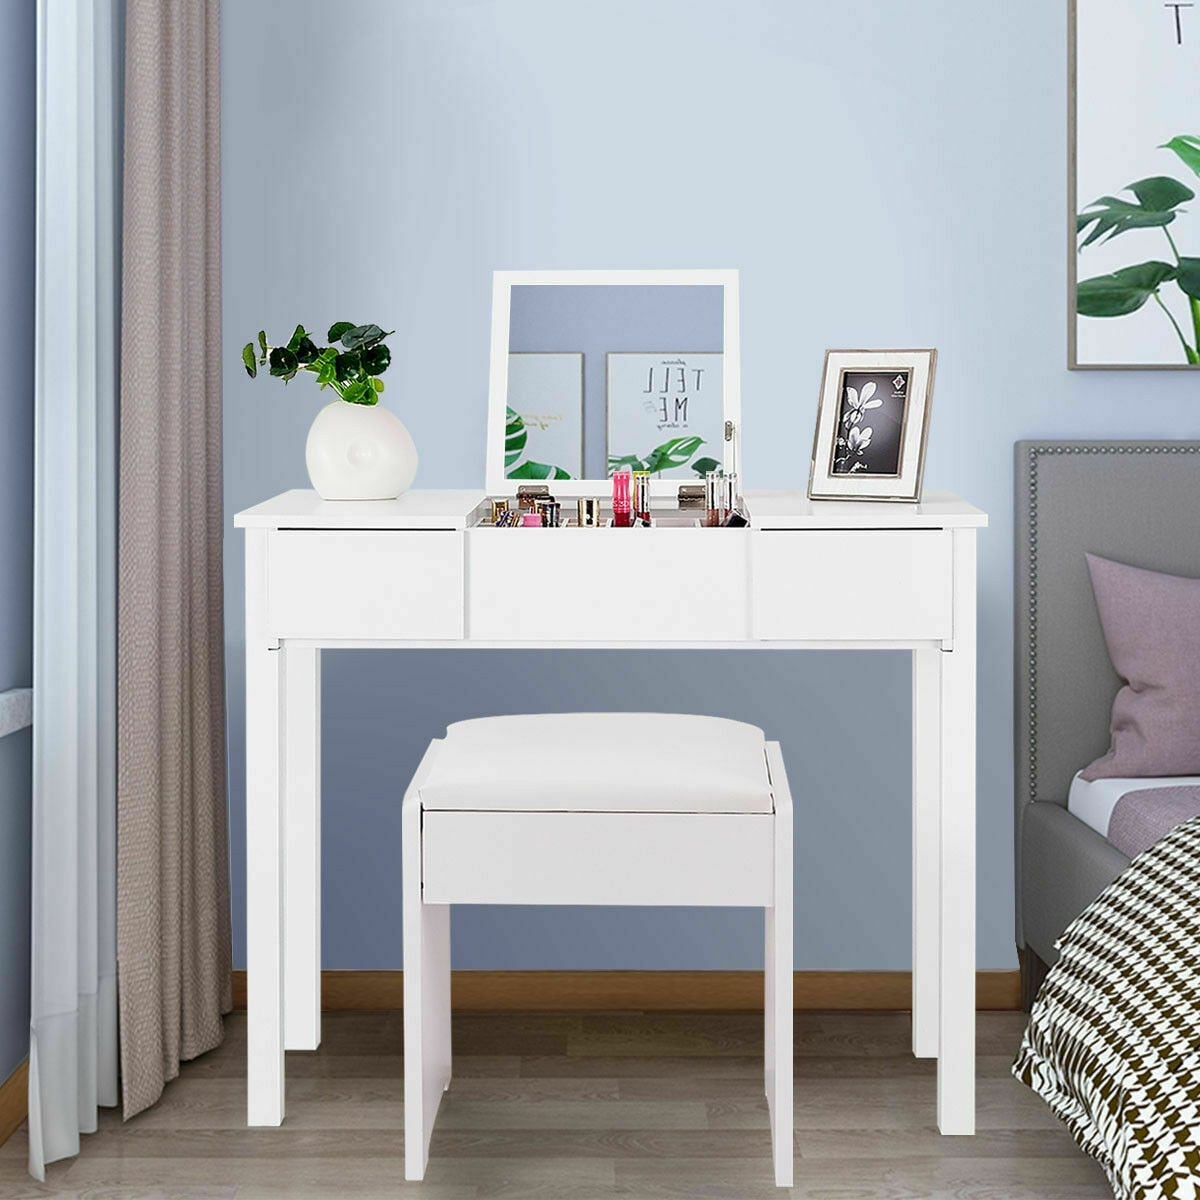 Costway White Vanity Dressing Table Furniture Stool Storage Box On Sale Overstock 18551616